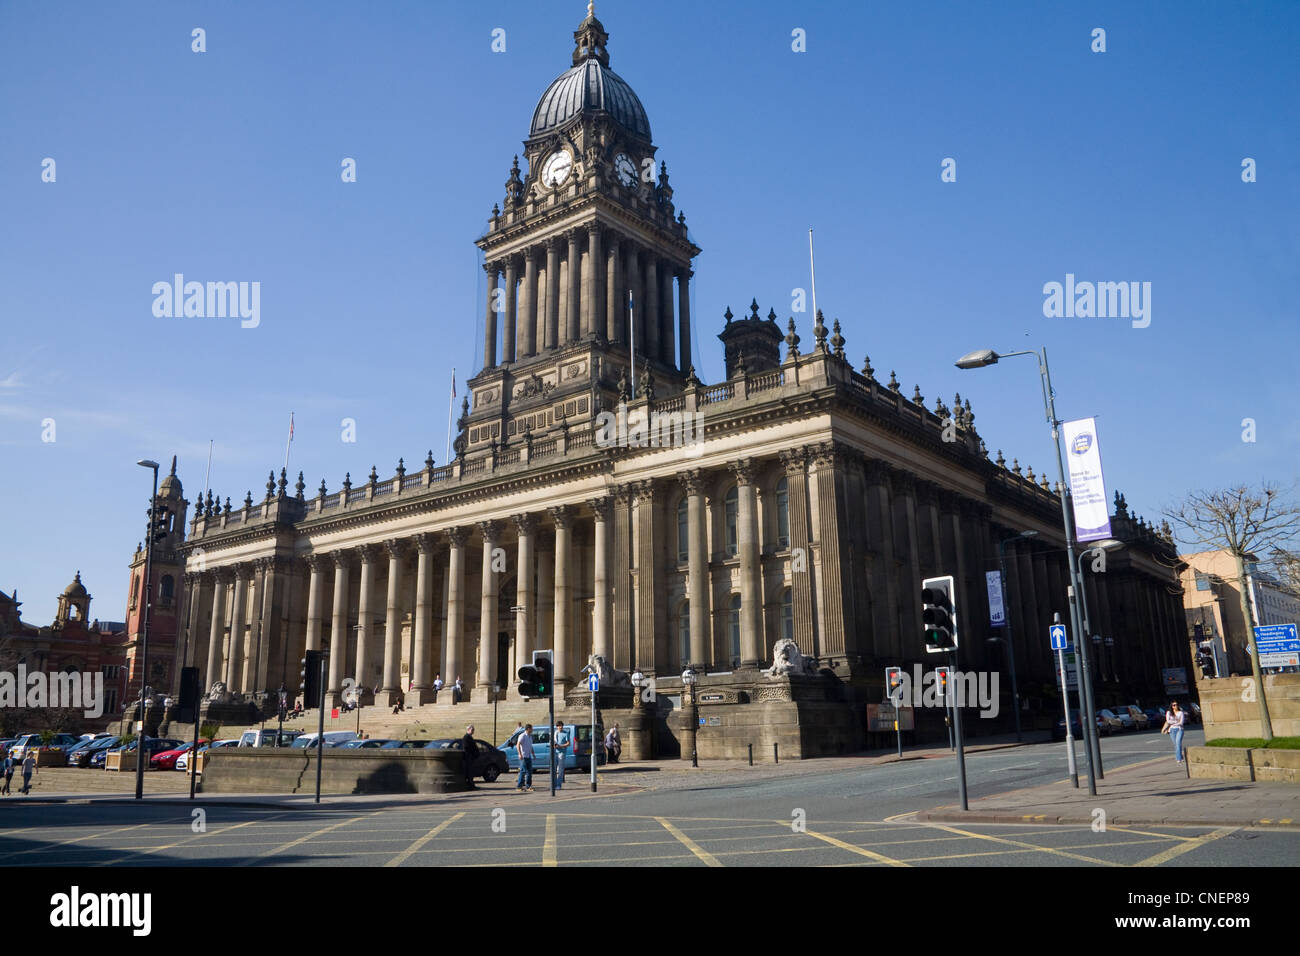 Leeds West Yorkshire England Town Hall and Register Office in The Headrow - Stock Image